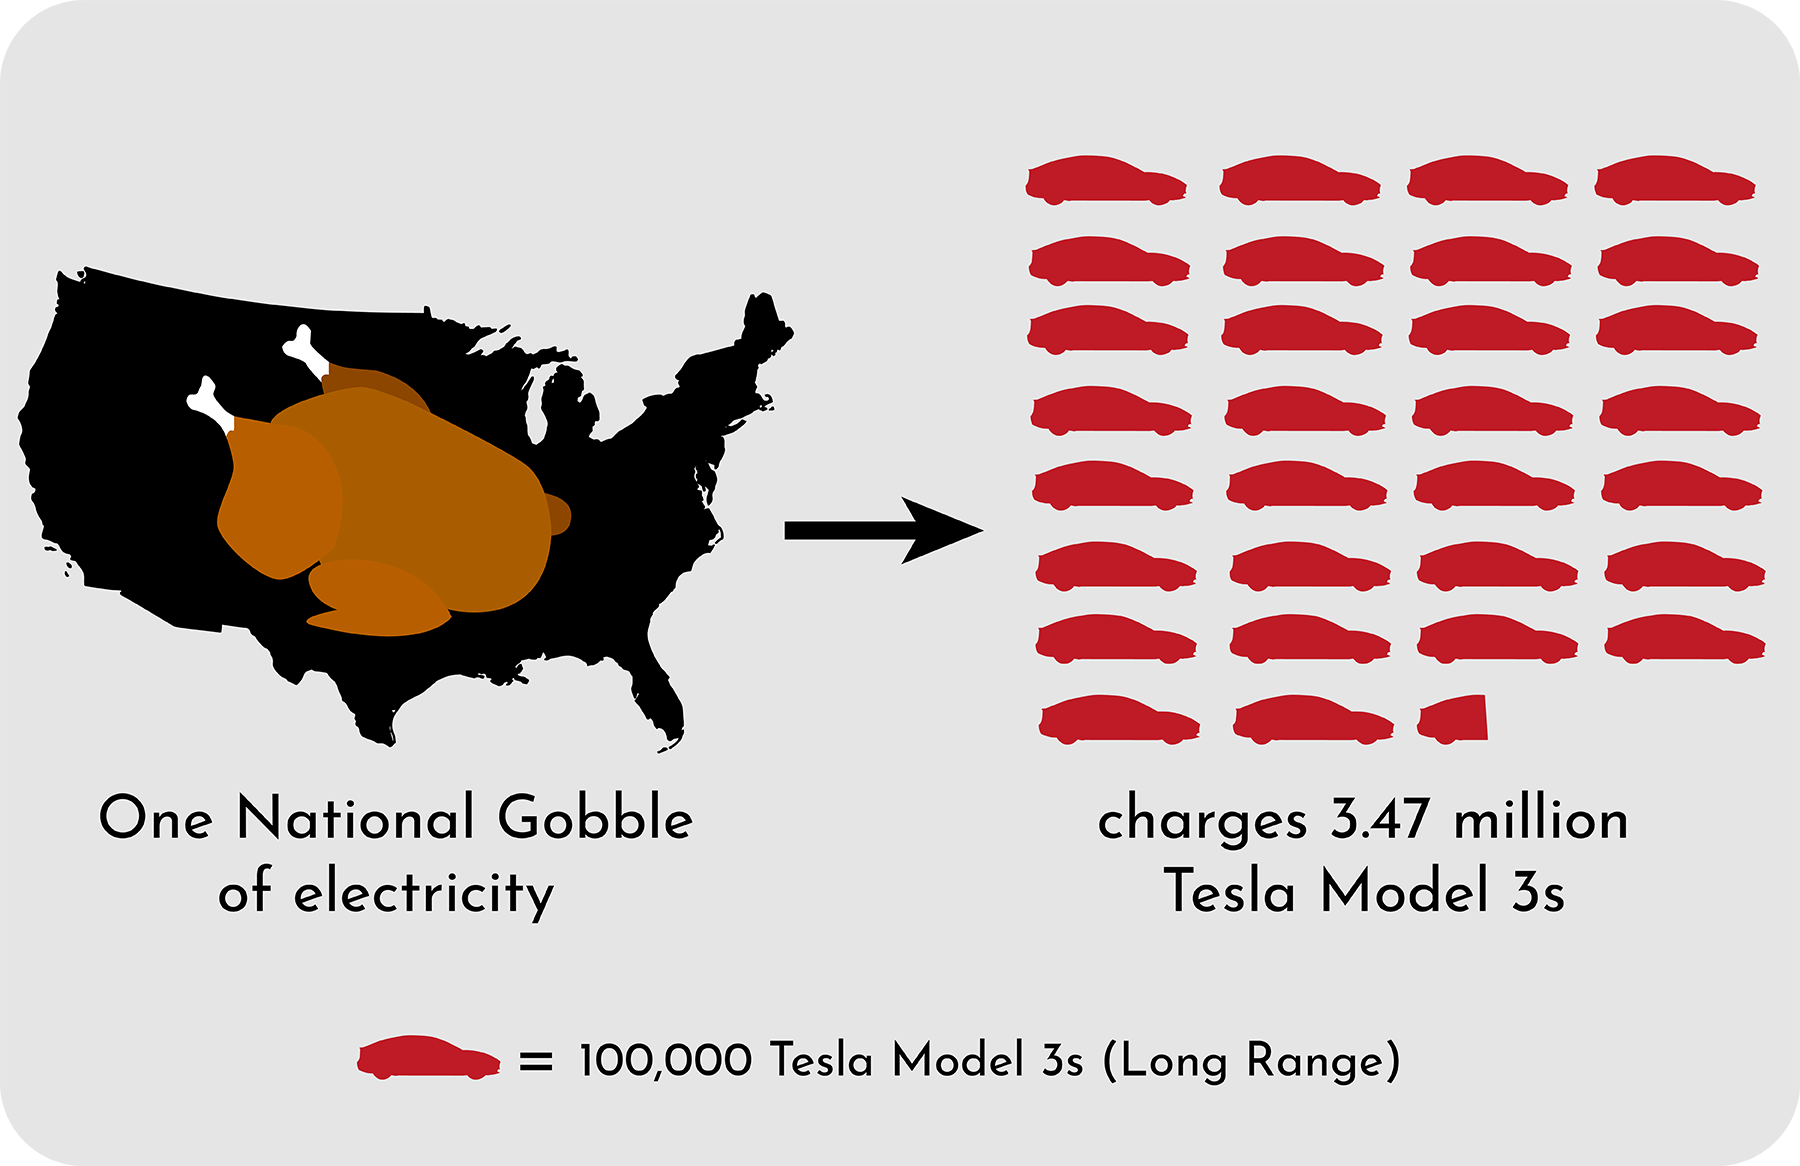 Cook Turkeys or Charge Teslas